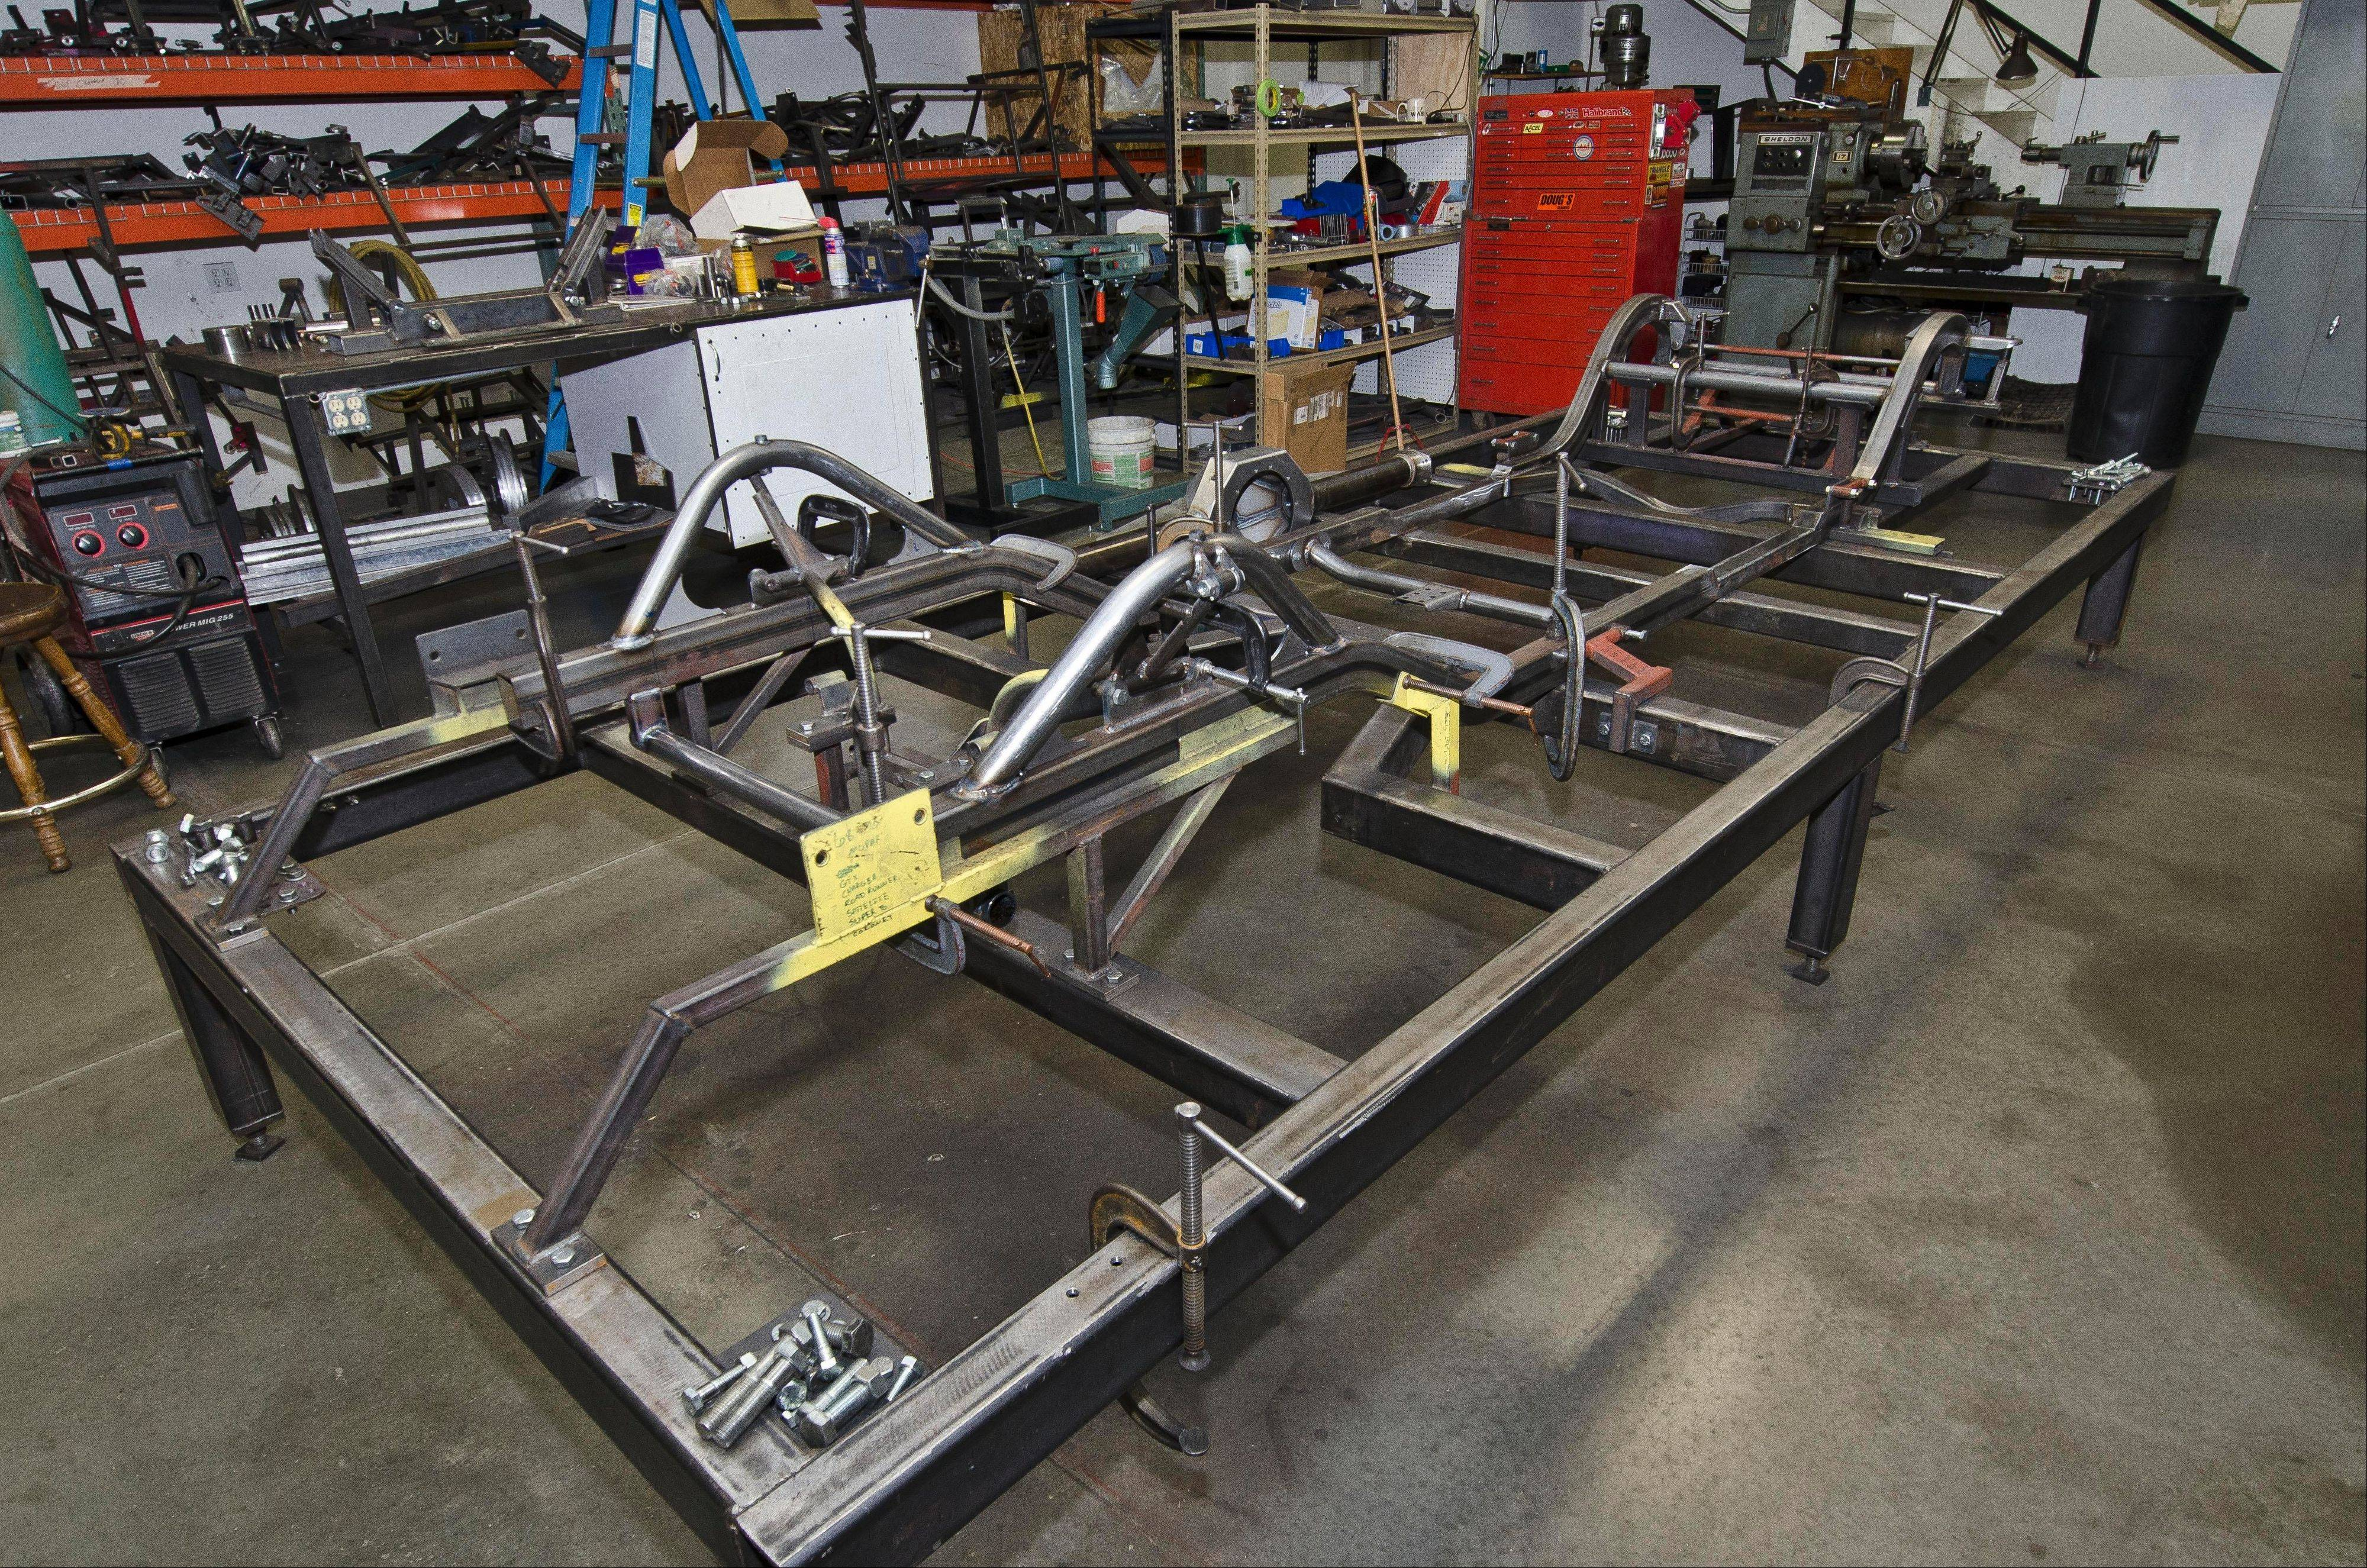 A new chassis begins to take shape on this welding frame at Schwartz Performance in Woodstock.